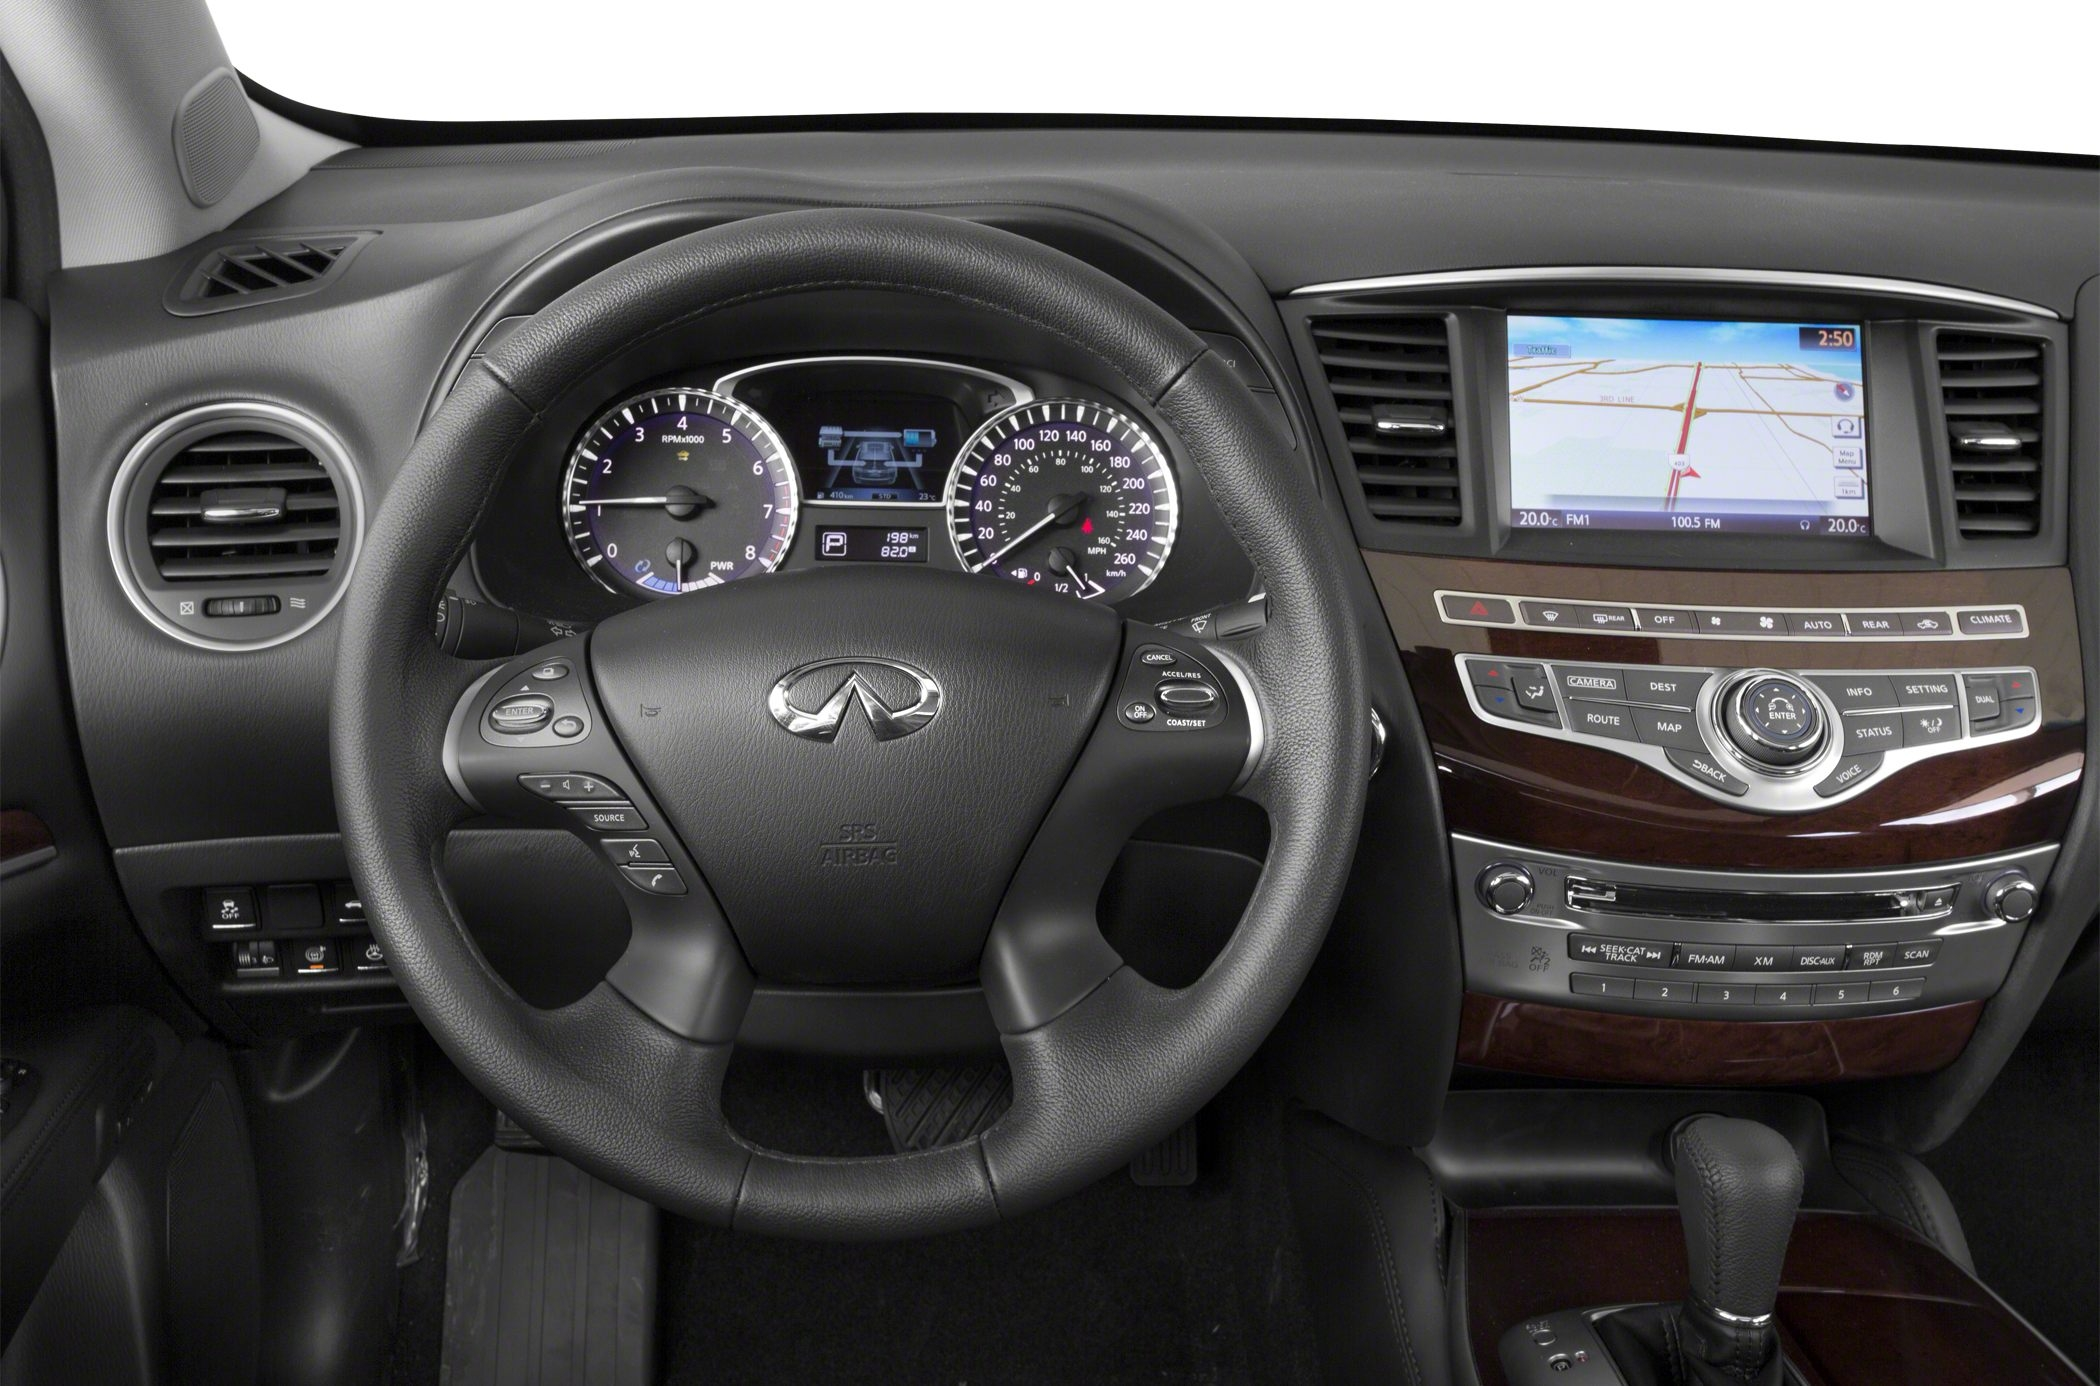 2014 infiniti qx60 hybrid price photos reviews amp features infiniti qx60 invoice price